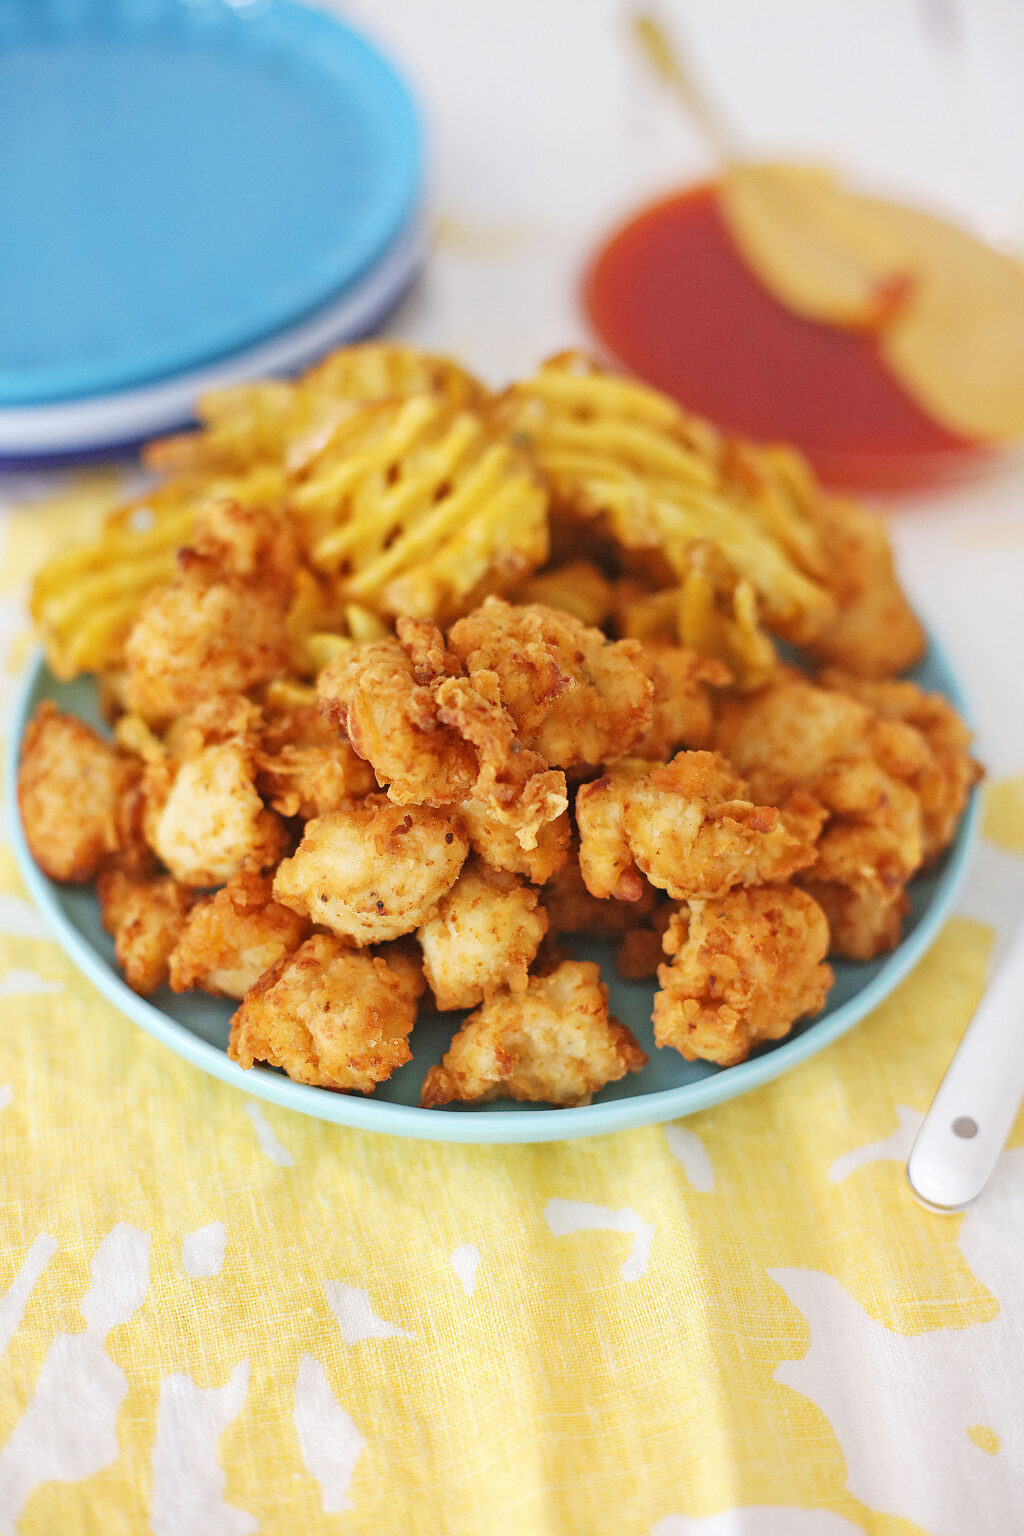 chick-fil-a nuggets on a blue plate